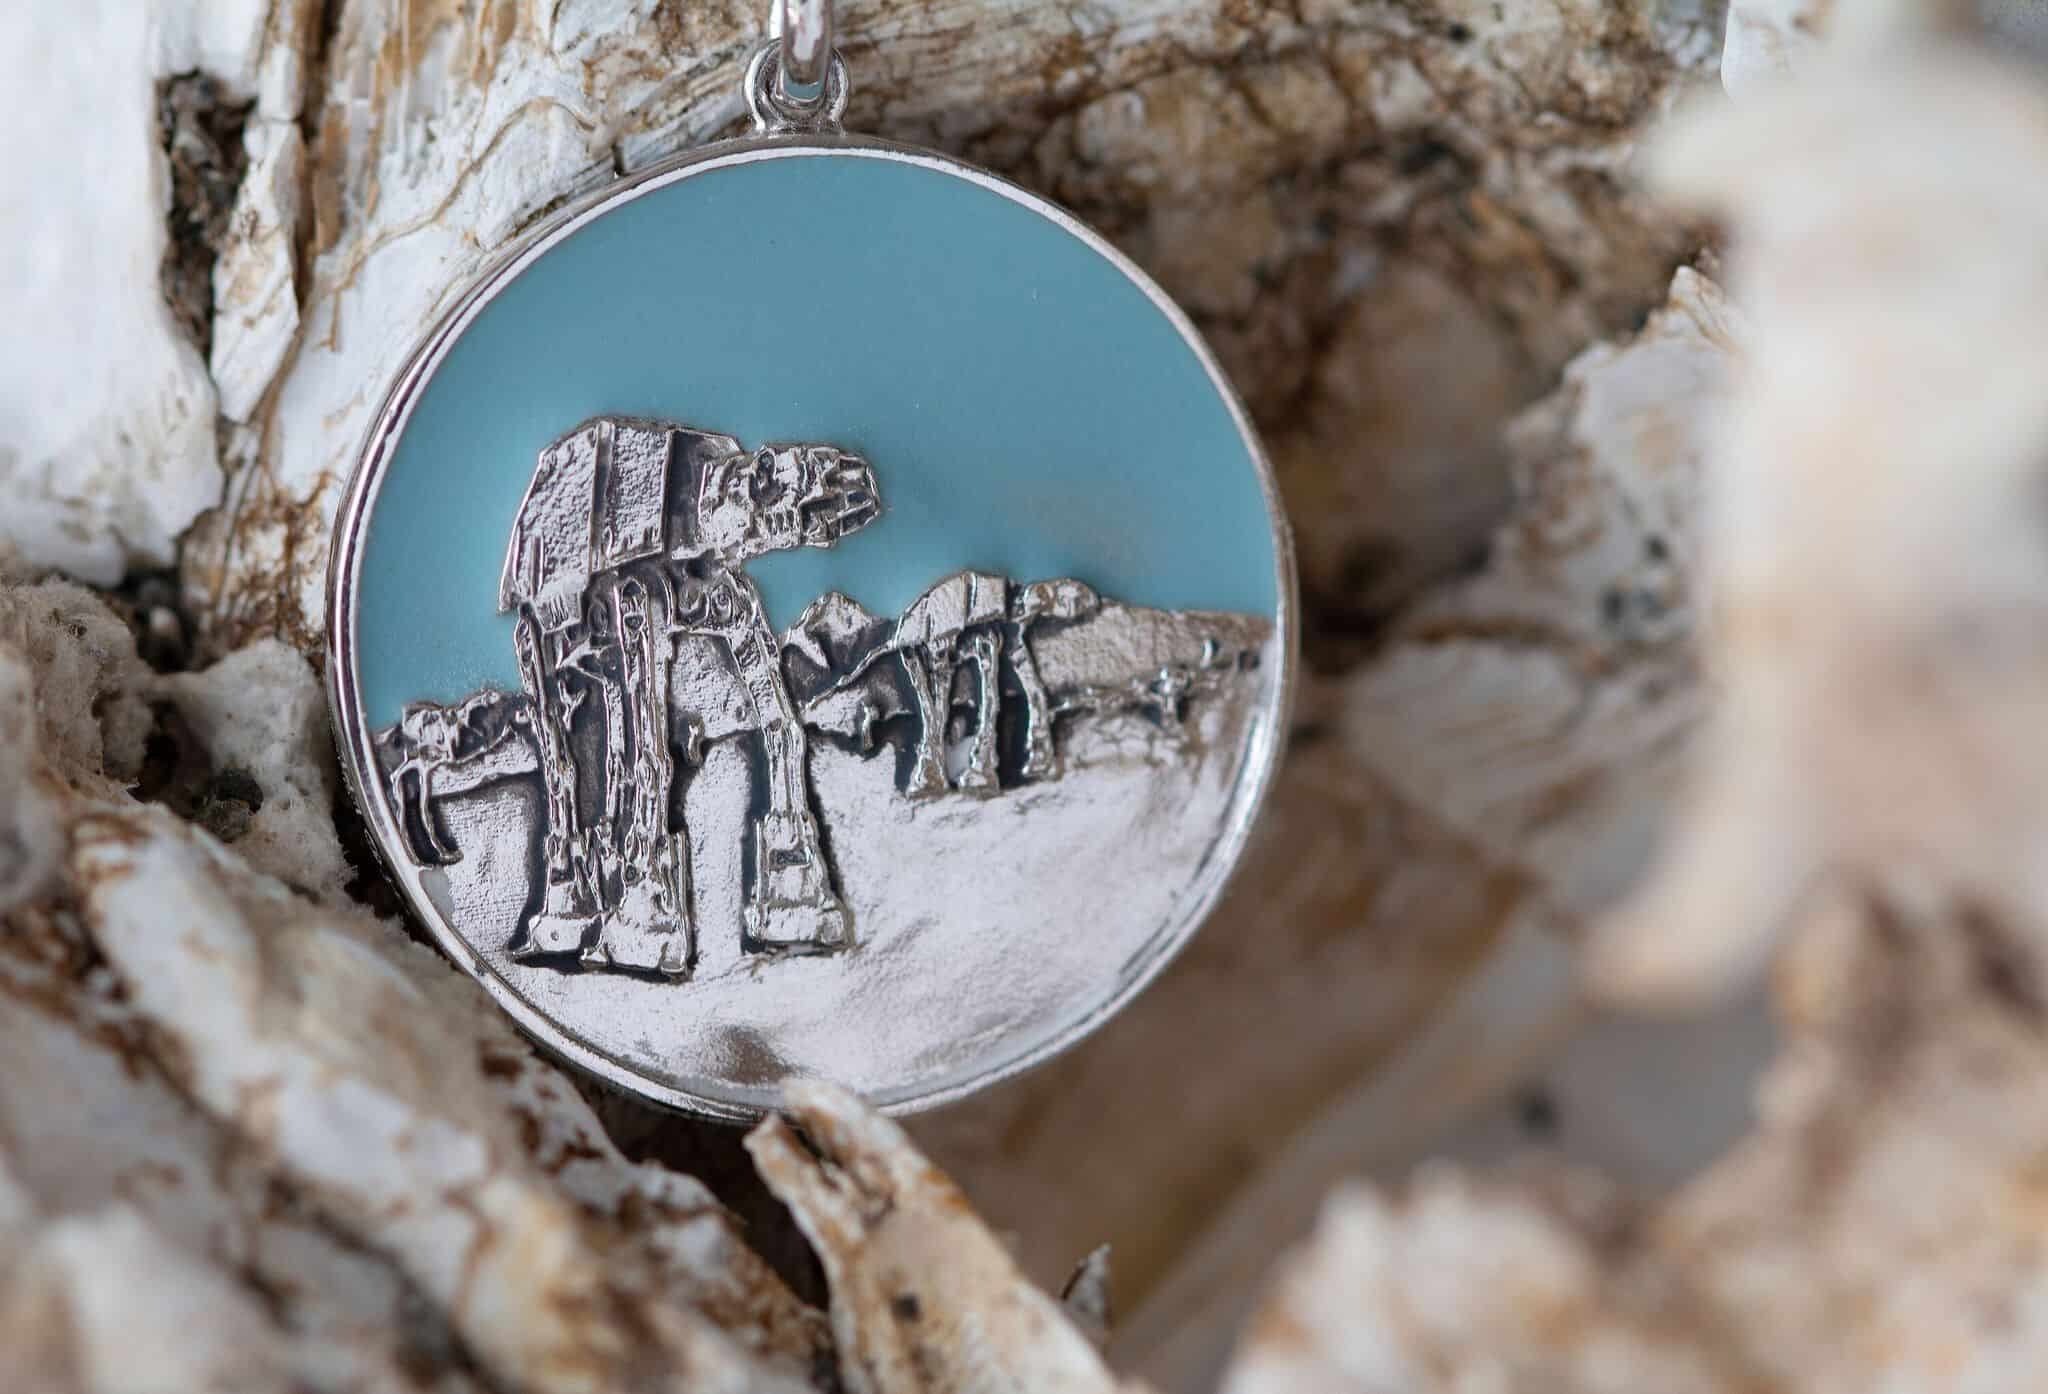 RockLove releasing new Star Wars jewelry line at San Diego Comic-Con